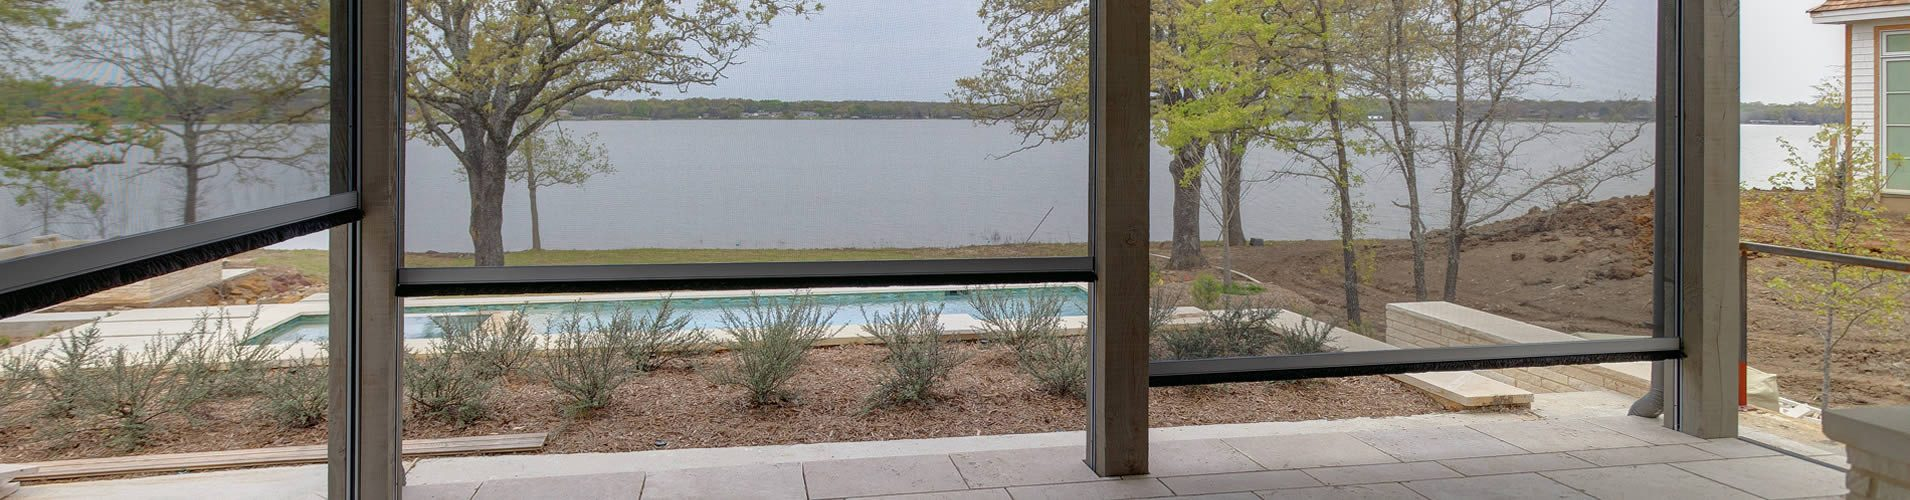 Dallas Outdoor Roller Shades